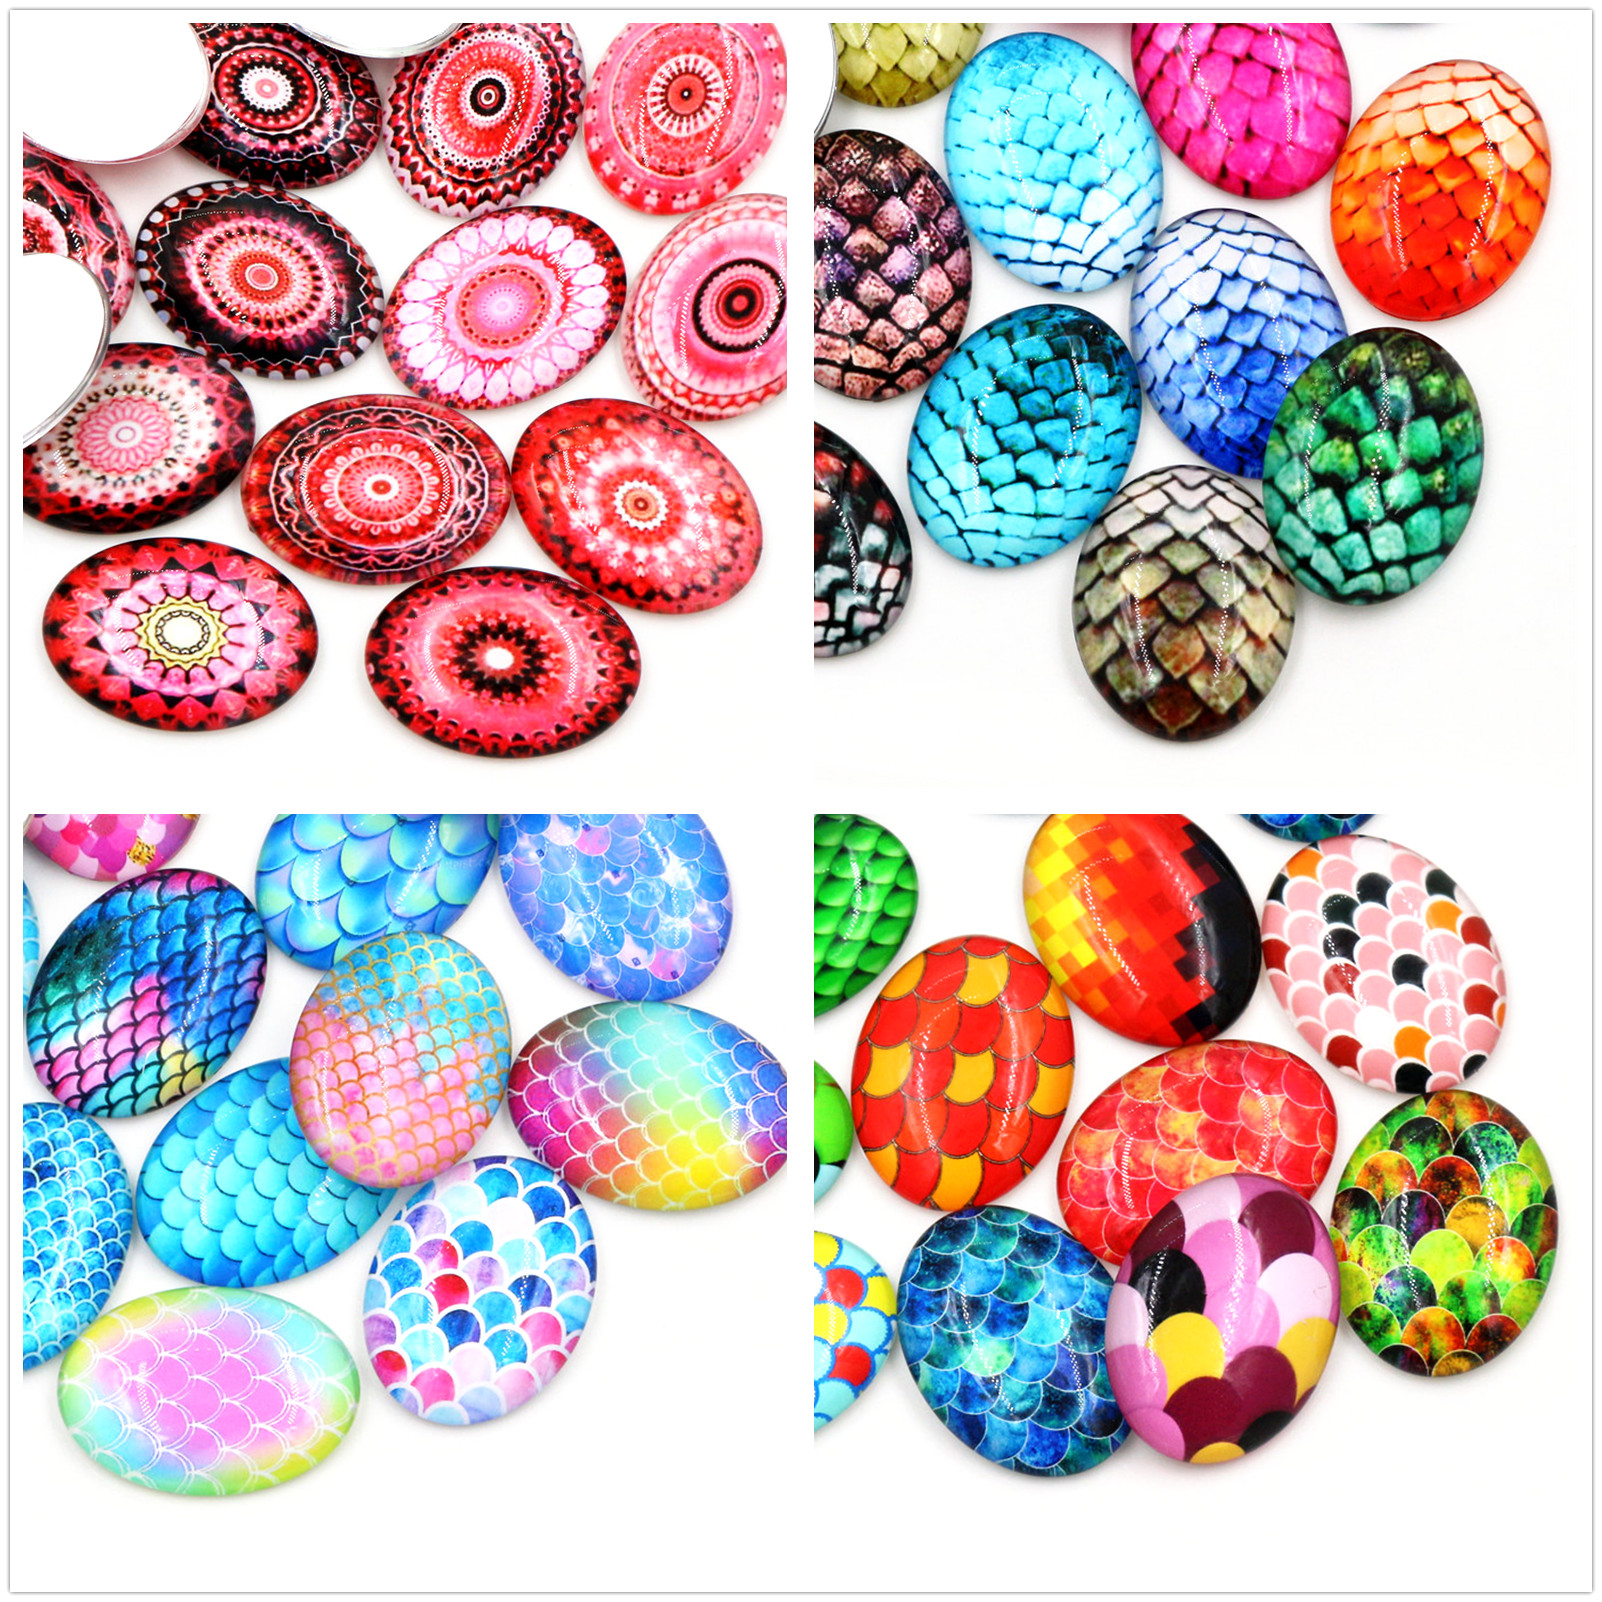 5pcs/Lot 30x40mm New Fashion Color Classic Handmade Photo Glass Cabochons Pattern Domed Jewelry Accessories Supplies